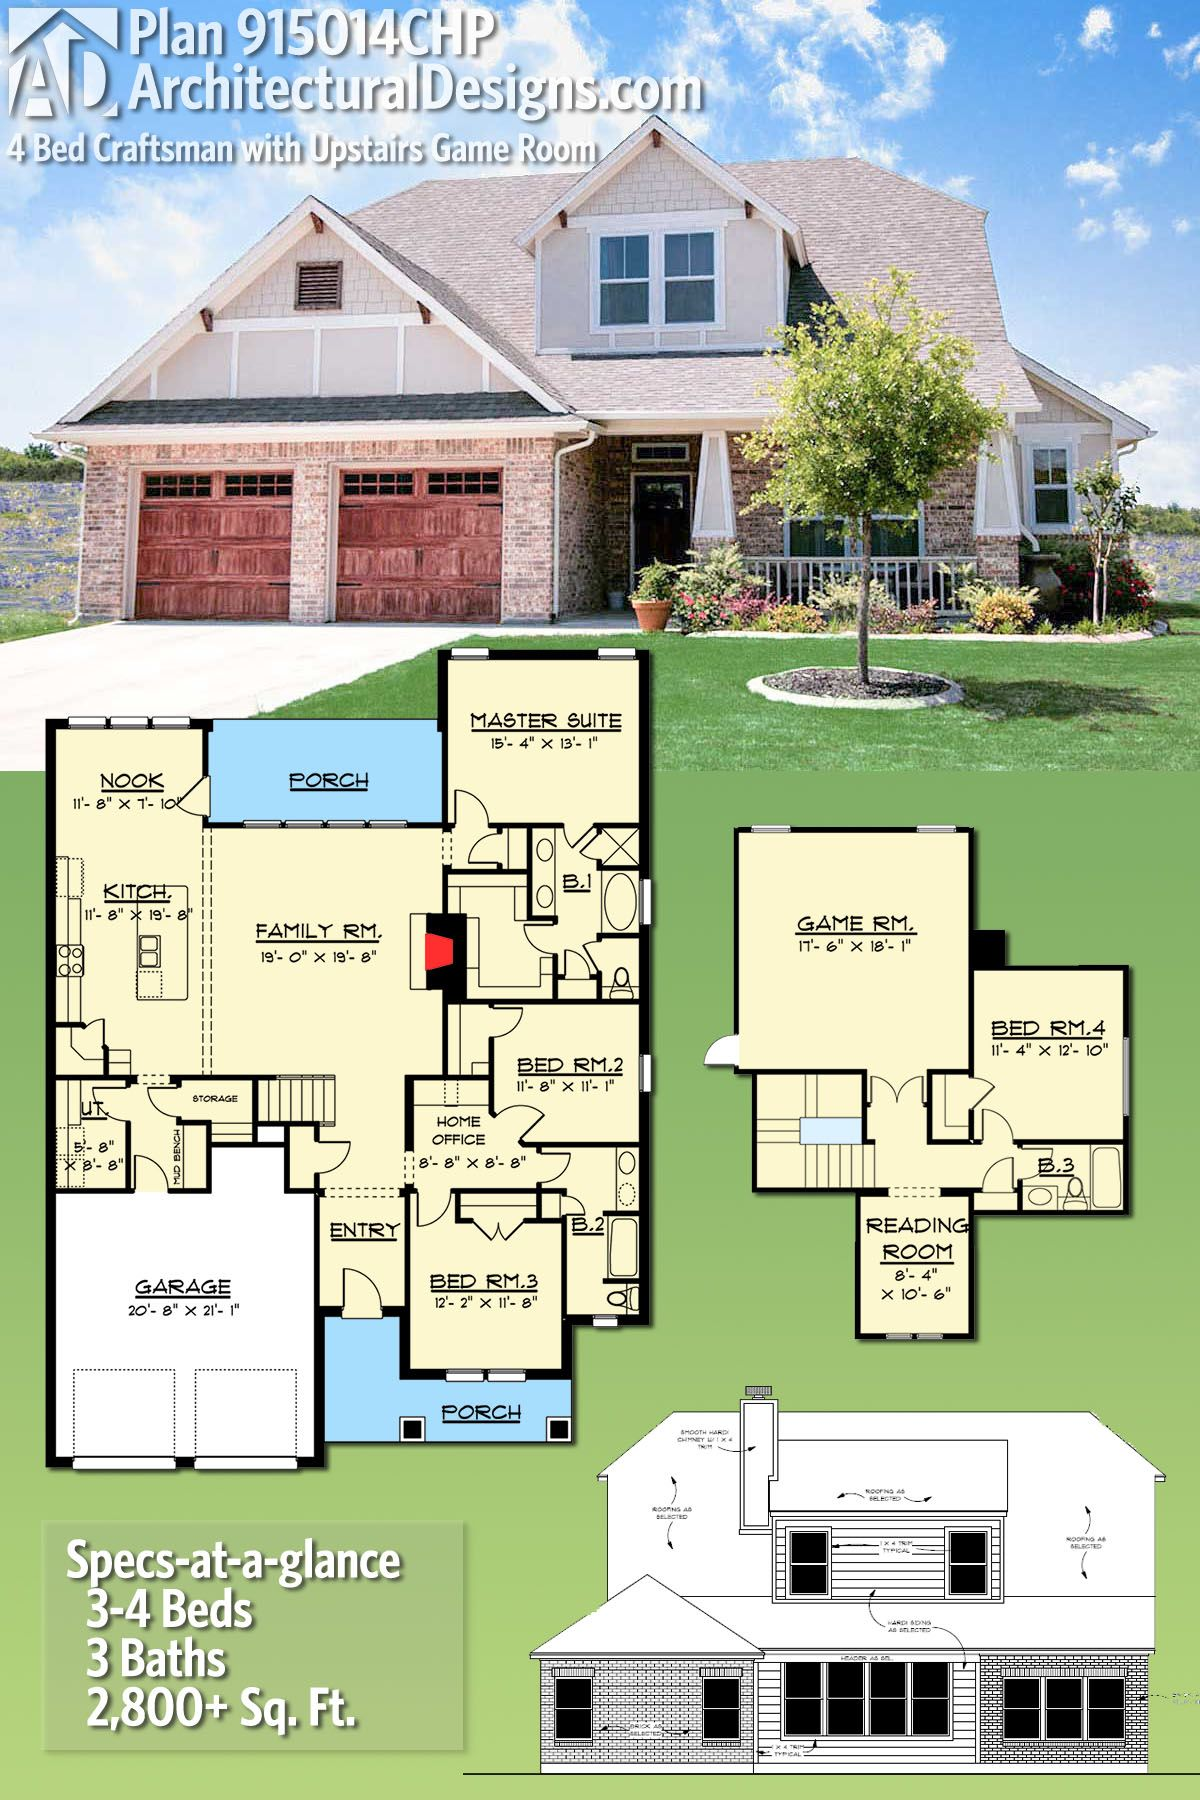 Plan chp bed craftsman with upstairs game room modern